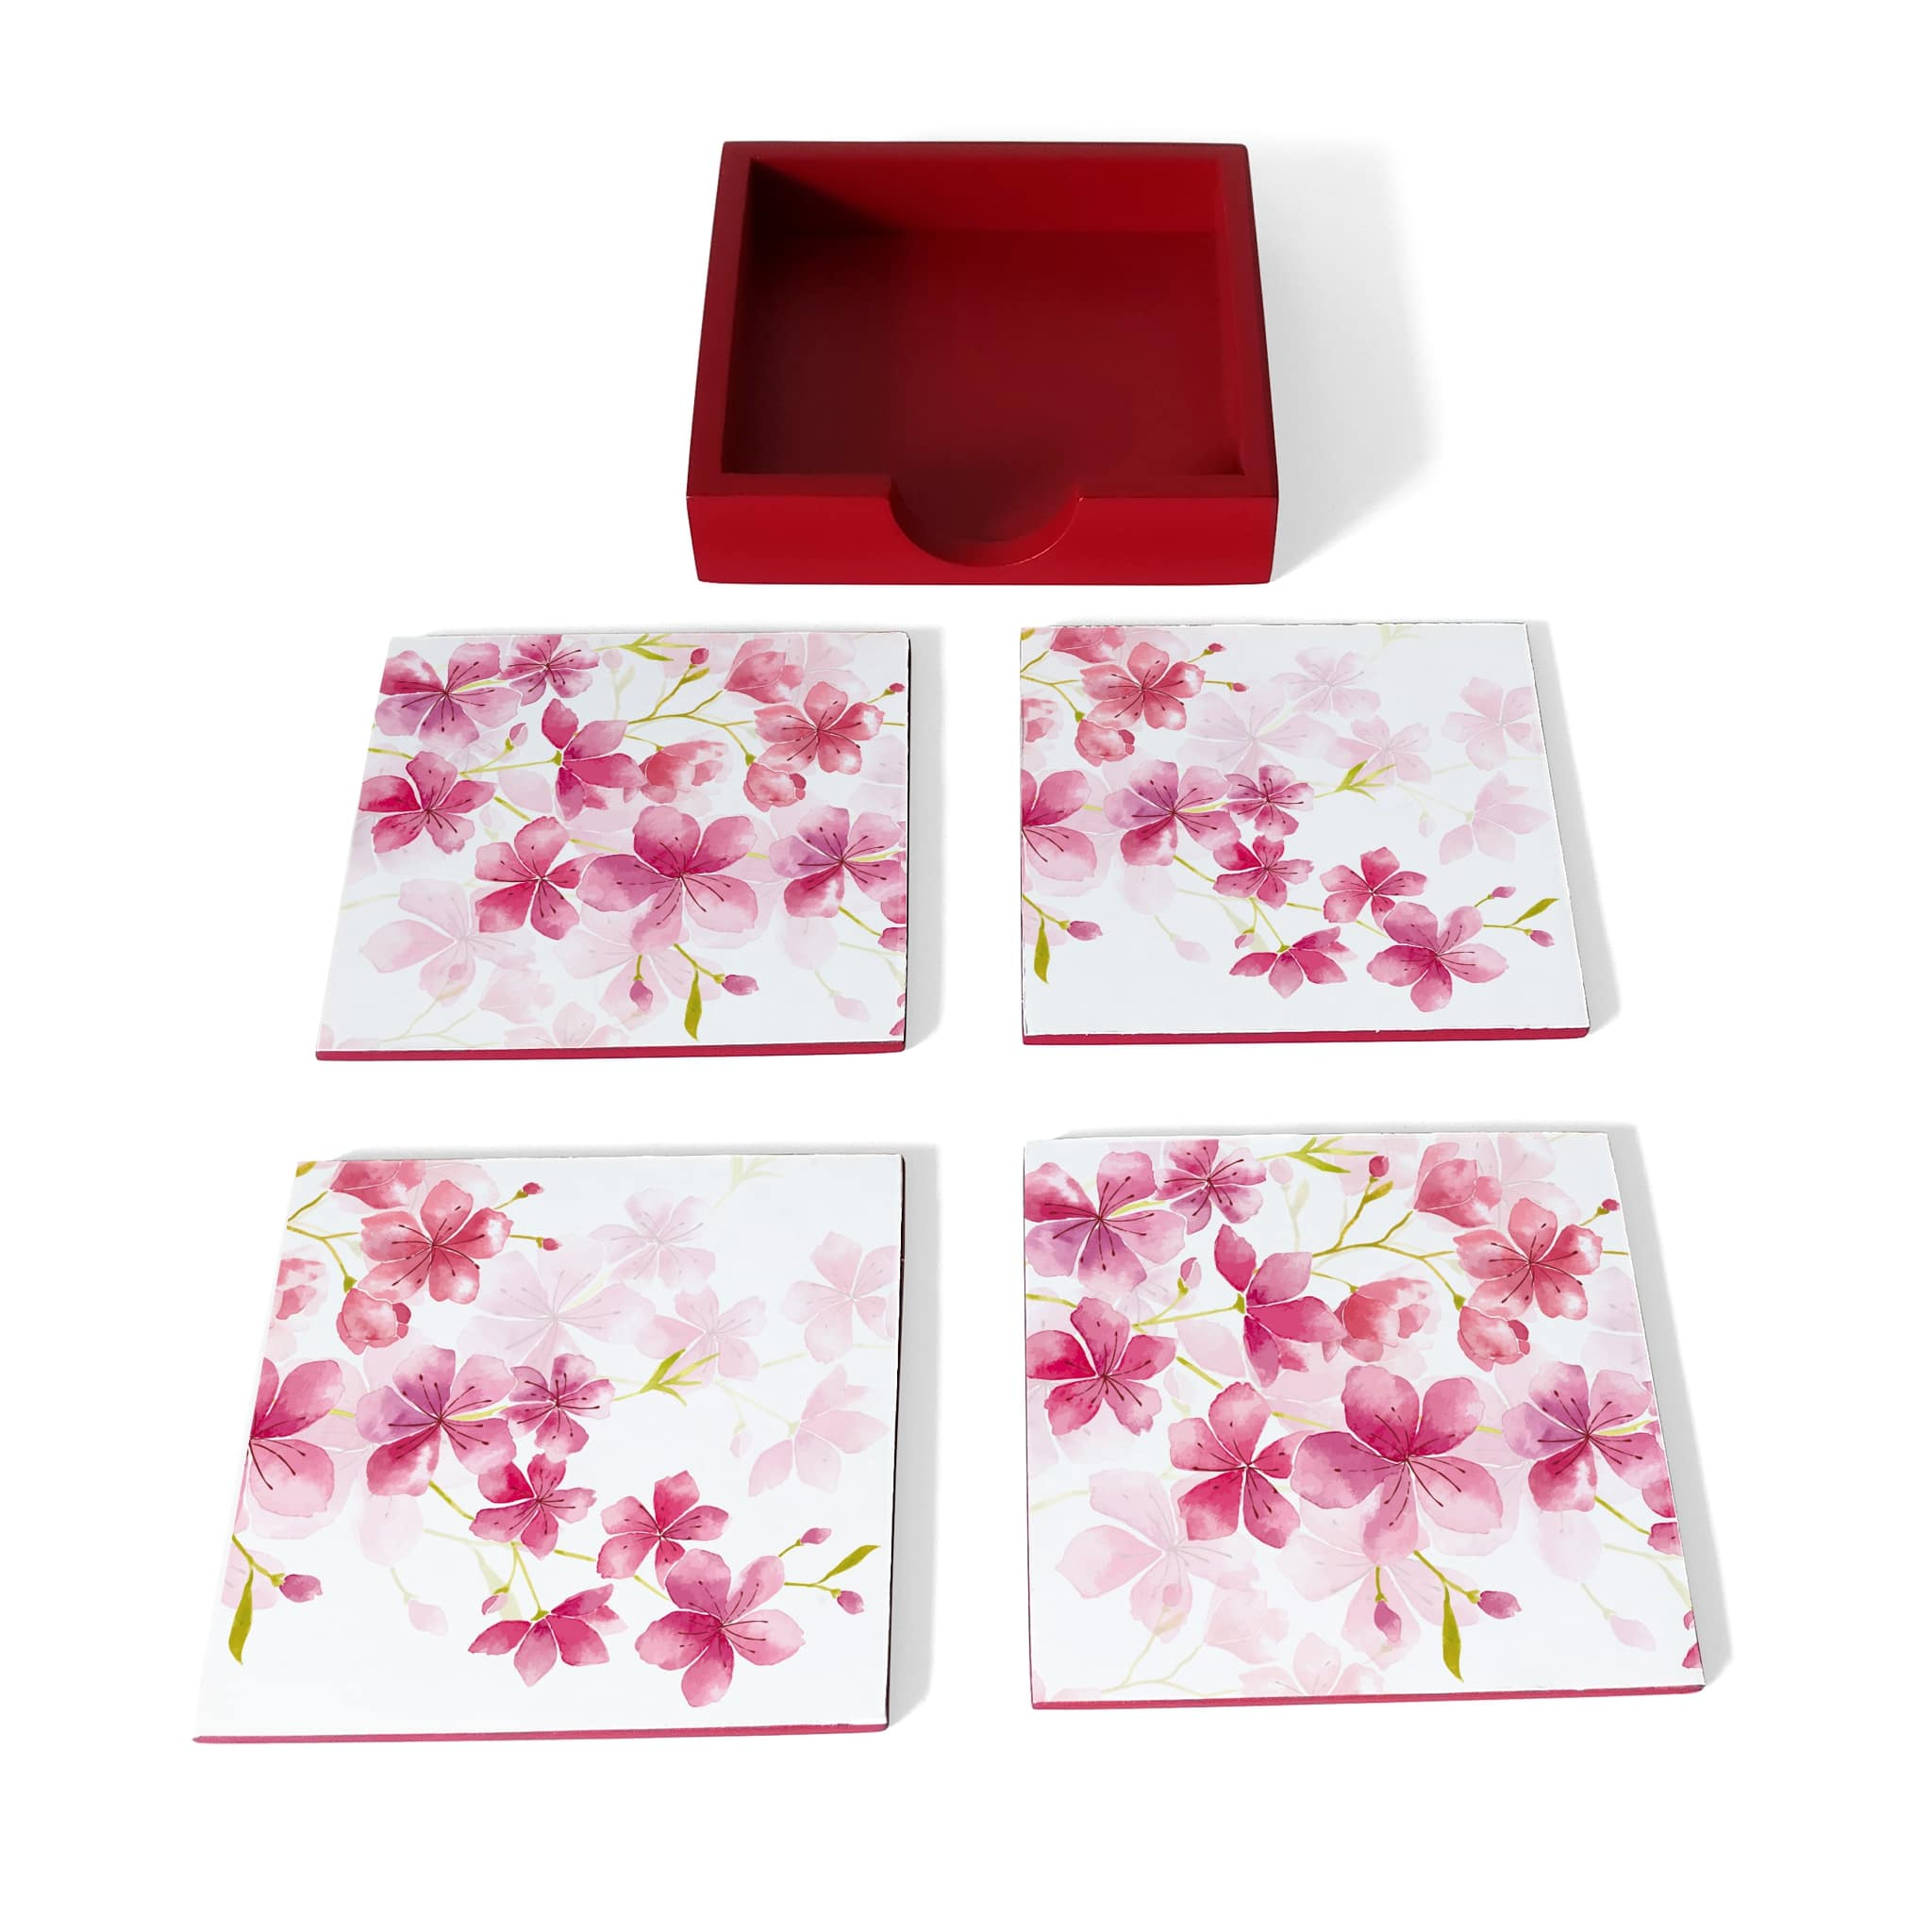 Cherry Blossom Coaster Set with Box